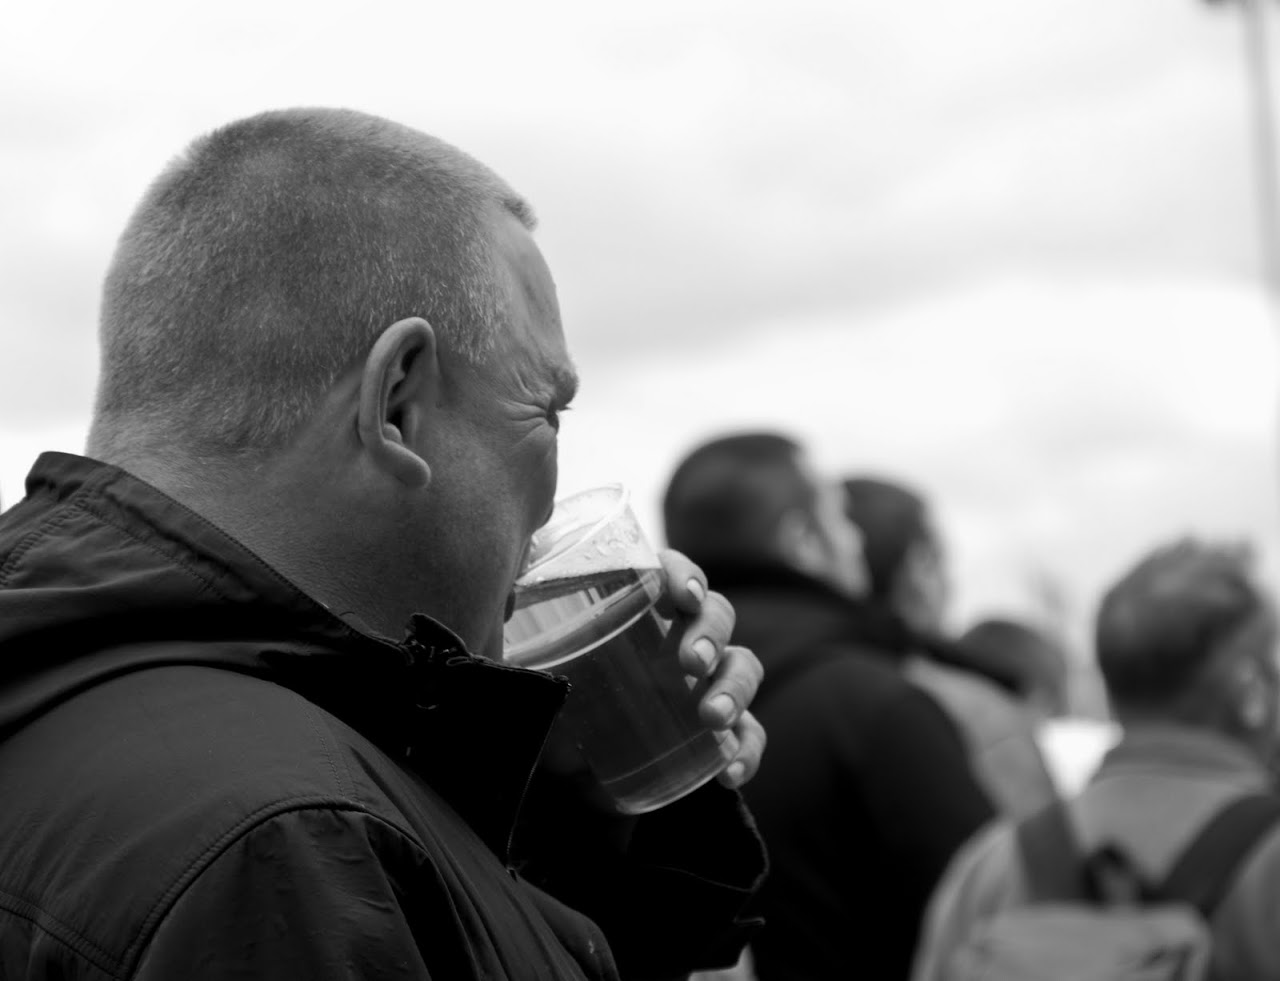 NC at Truckfest 2010 - Drinkum. - 152_gulp